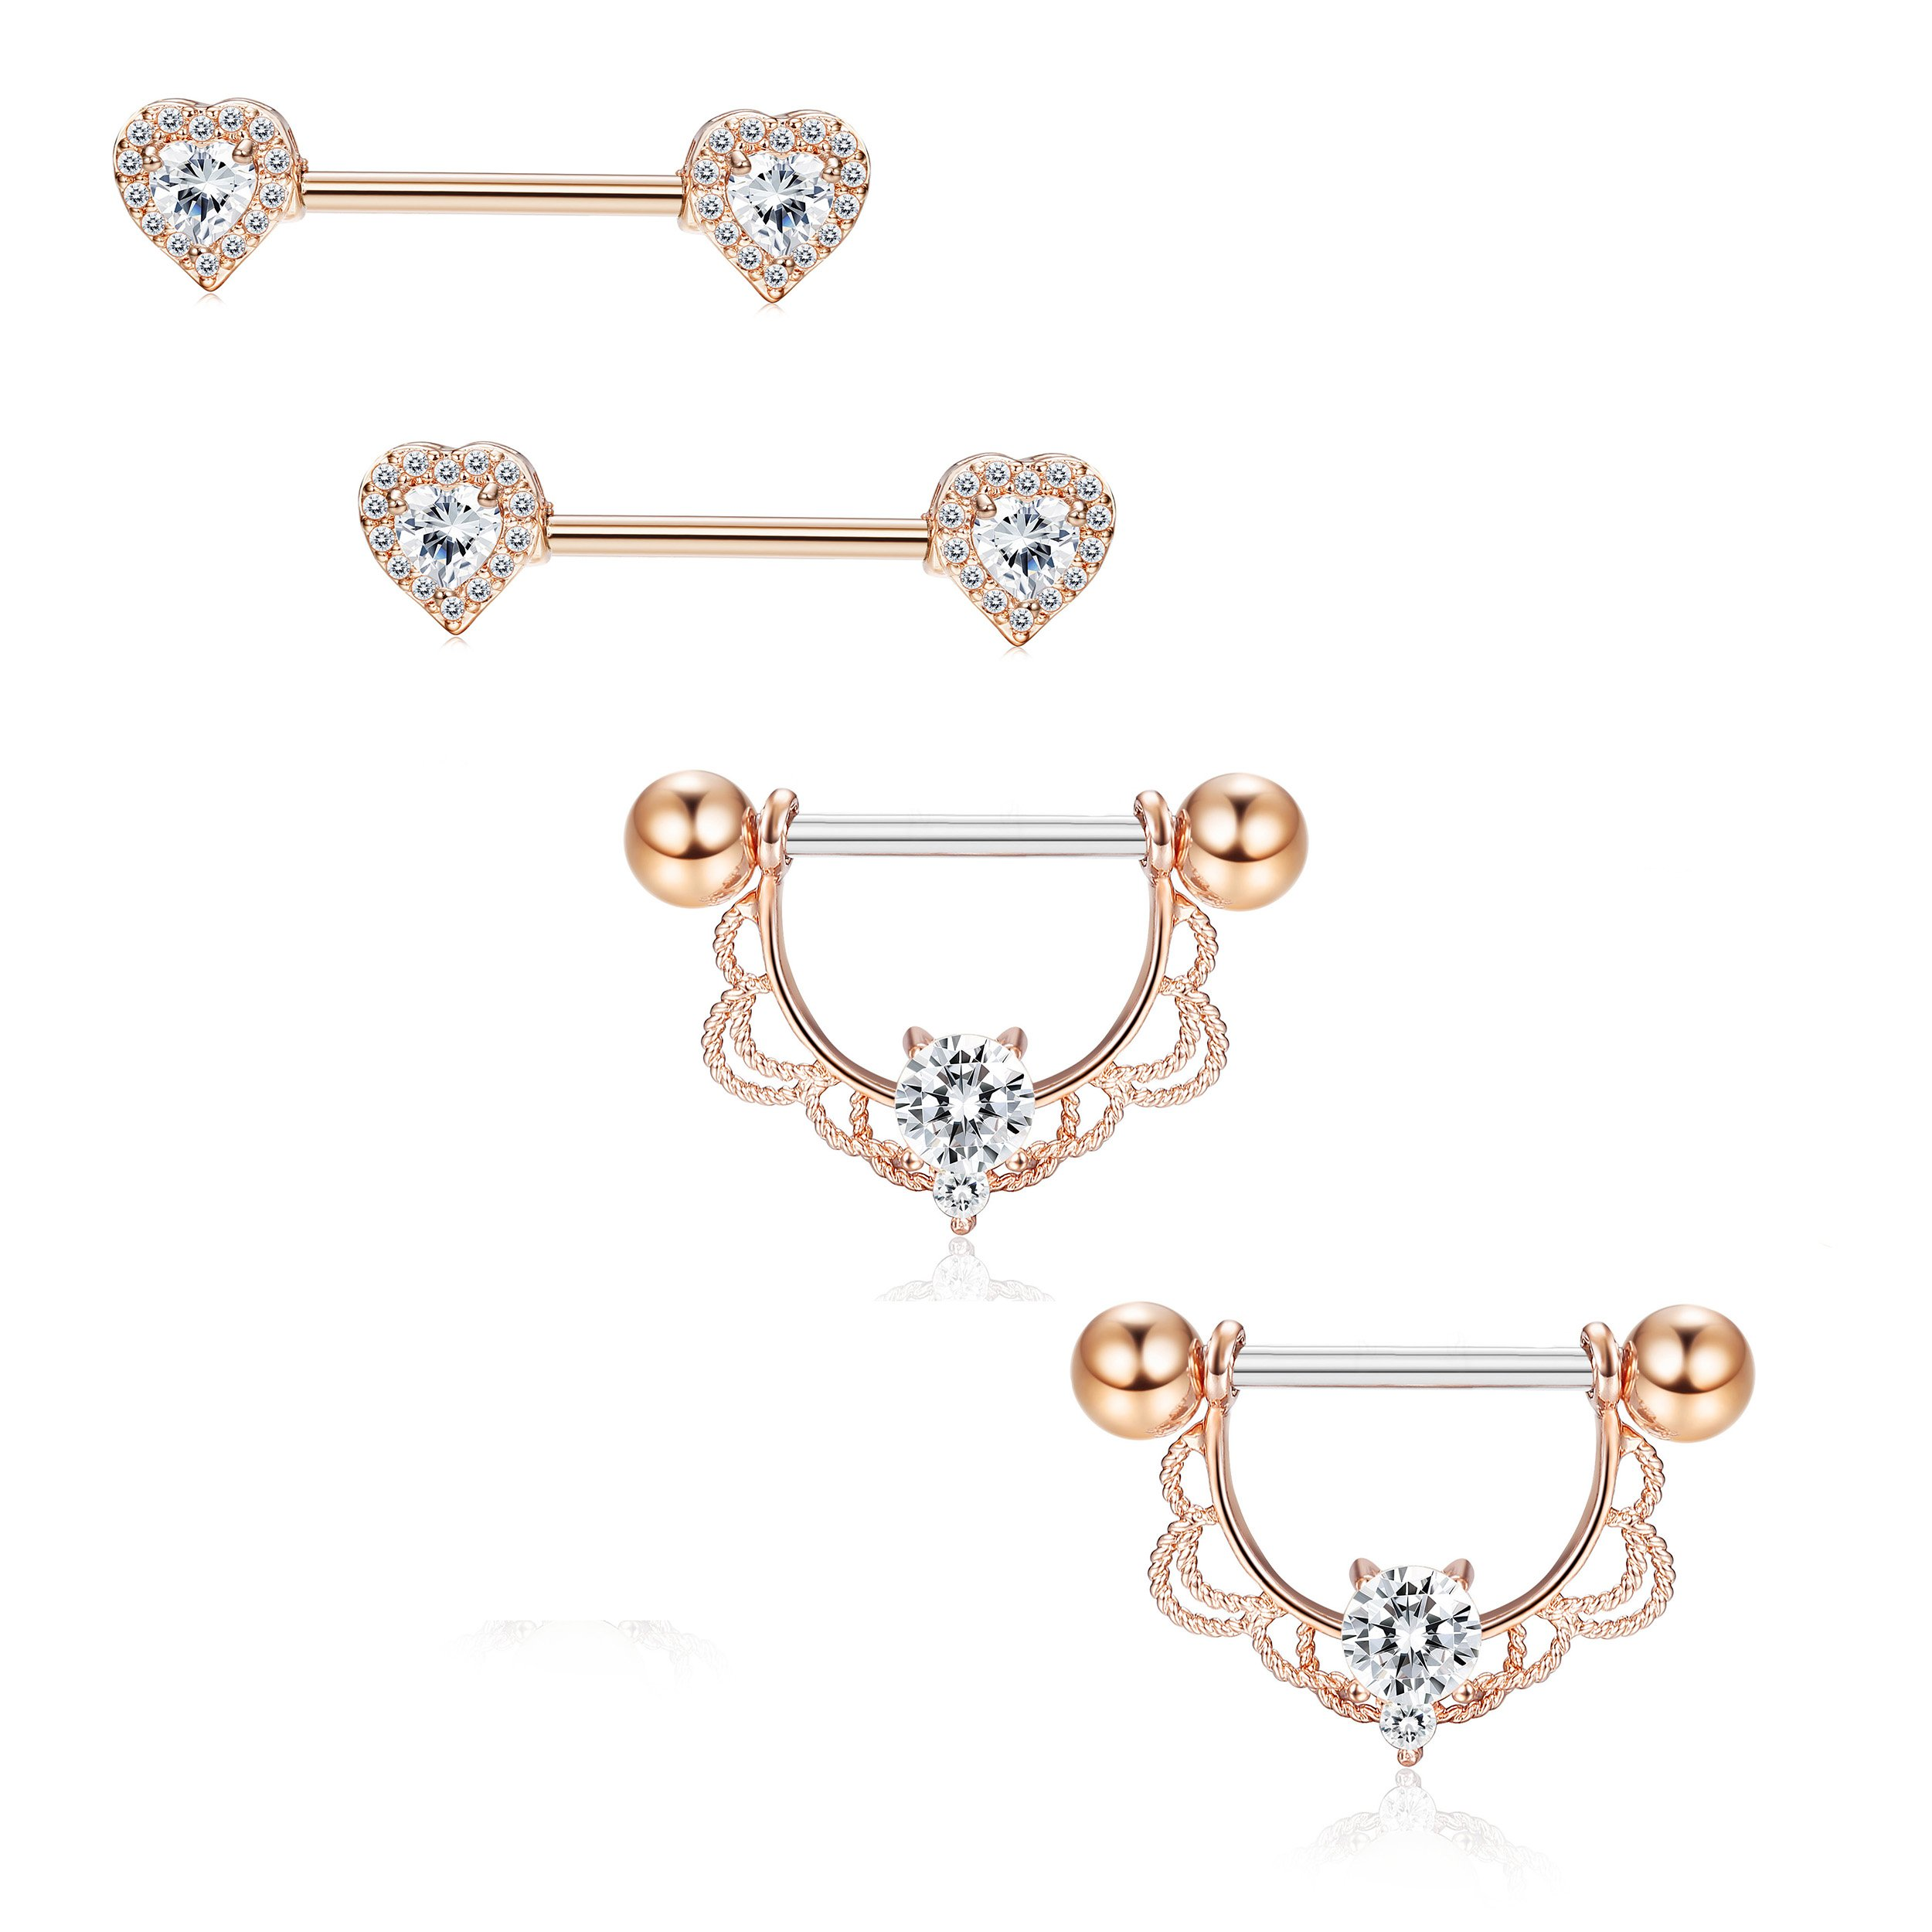 Jstyle 2 Pairs 316L Stainless Steel Nipple Piercing Tongue Rings Heart Barball CZ Nipplerings Body Piercing Rose Gold